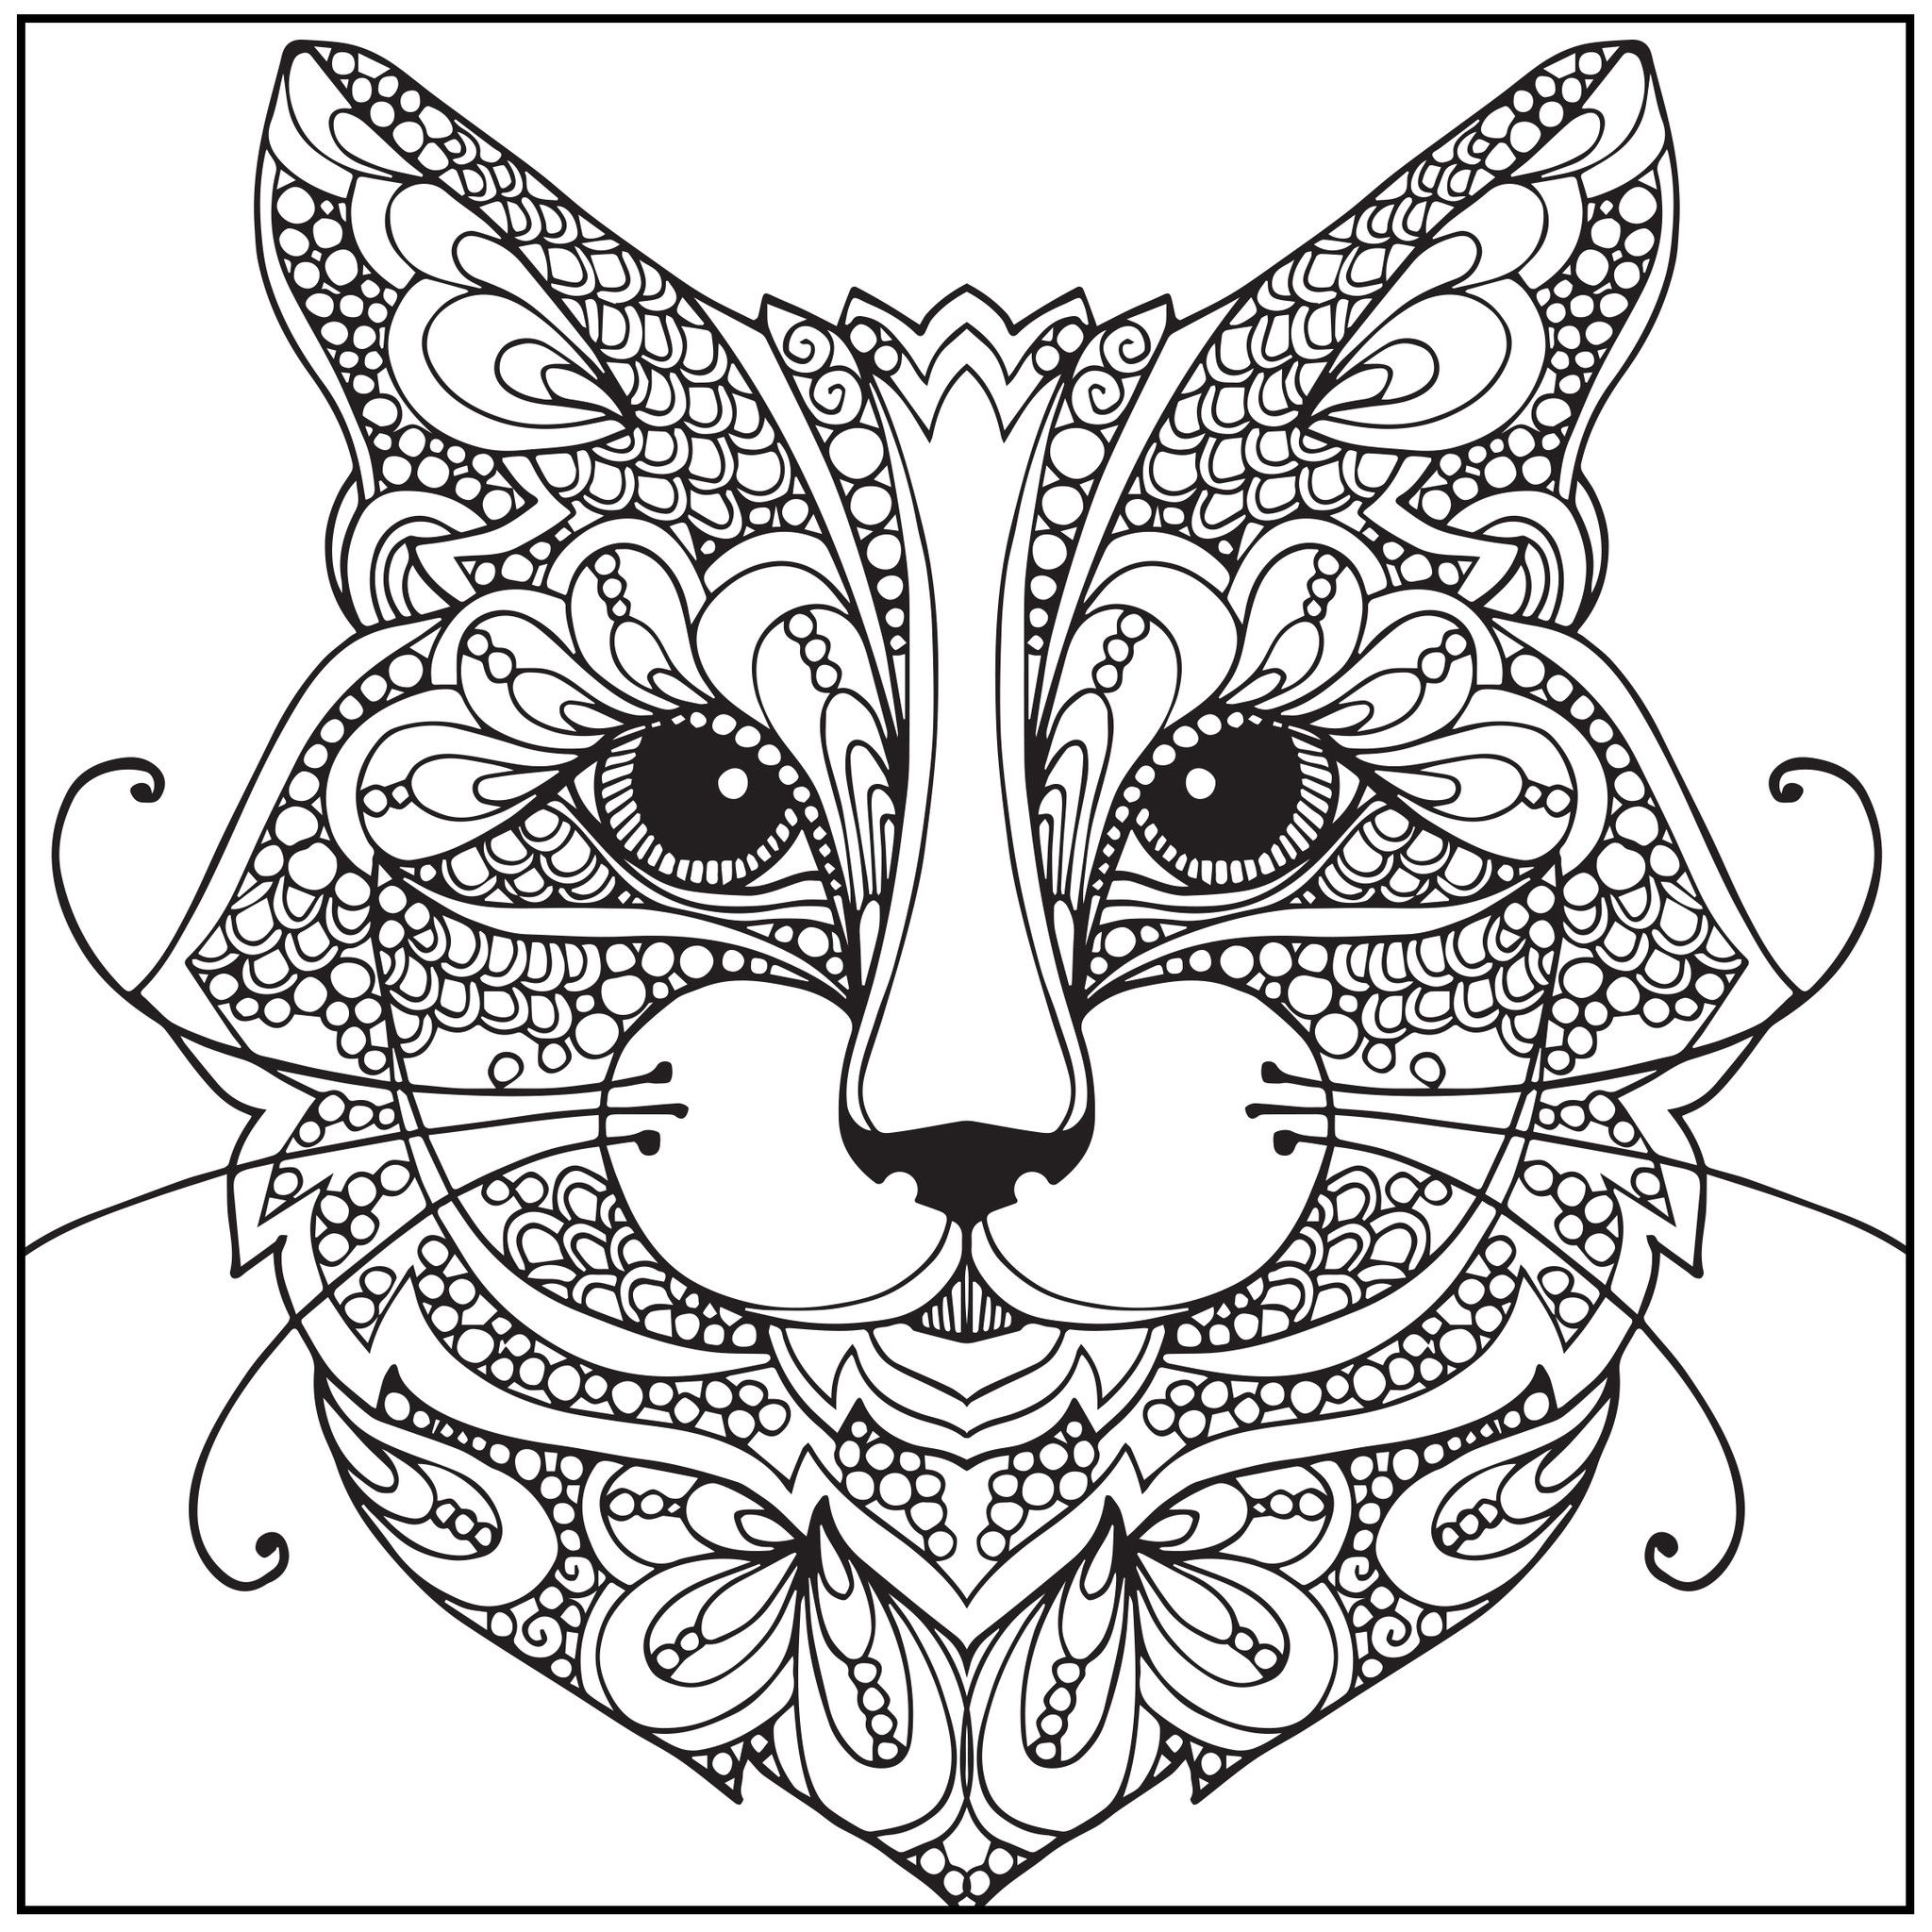 Stress relief coloring pages mandala - Color With Music Wild About Cats Adult Coloring Book Blank Page